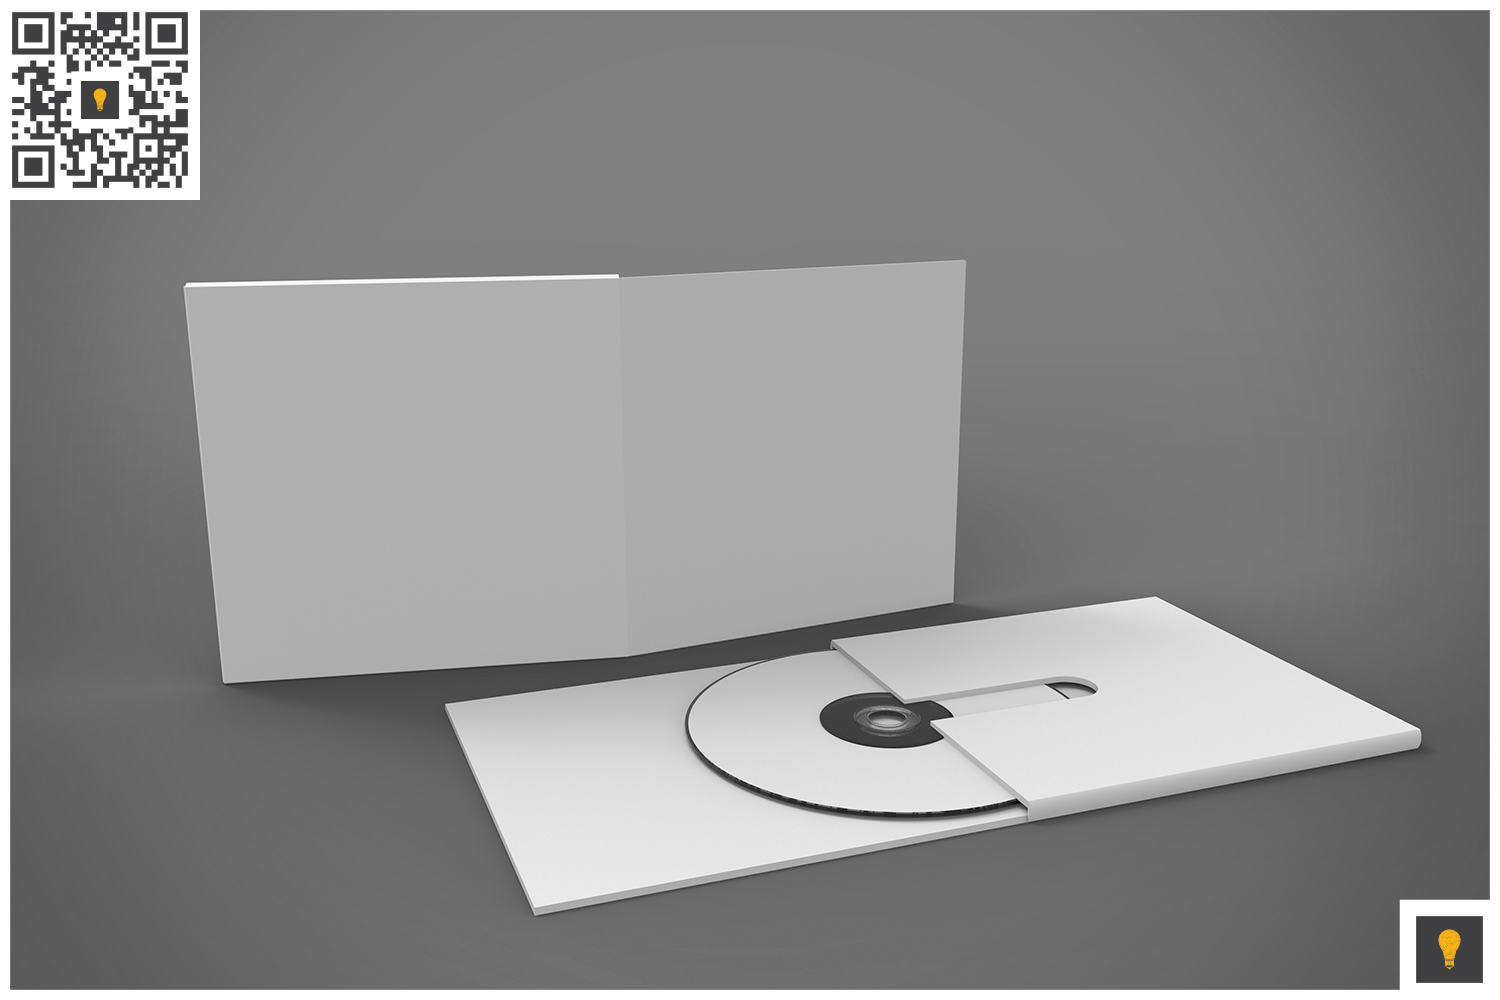 Branding Stationary 3D Render example image 10